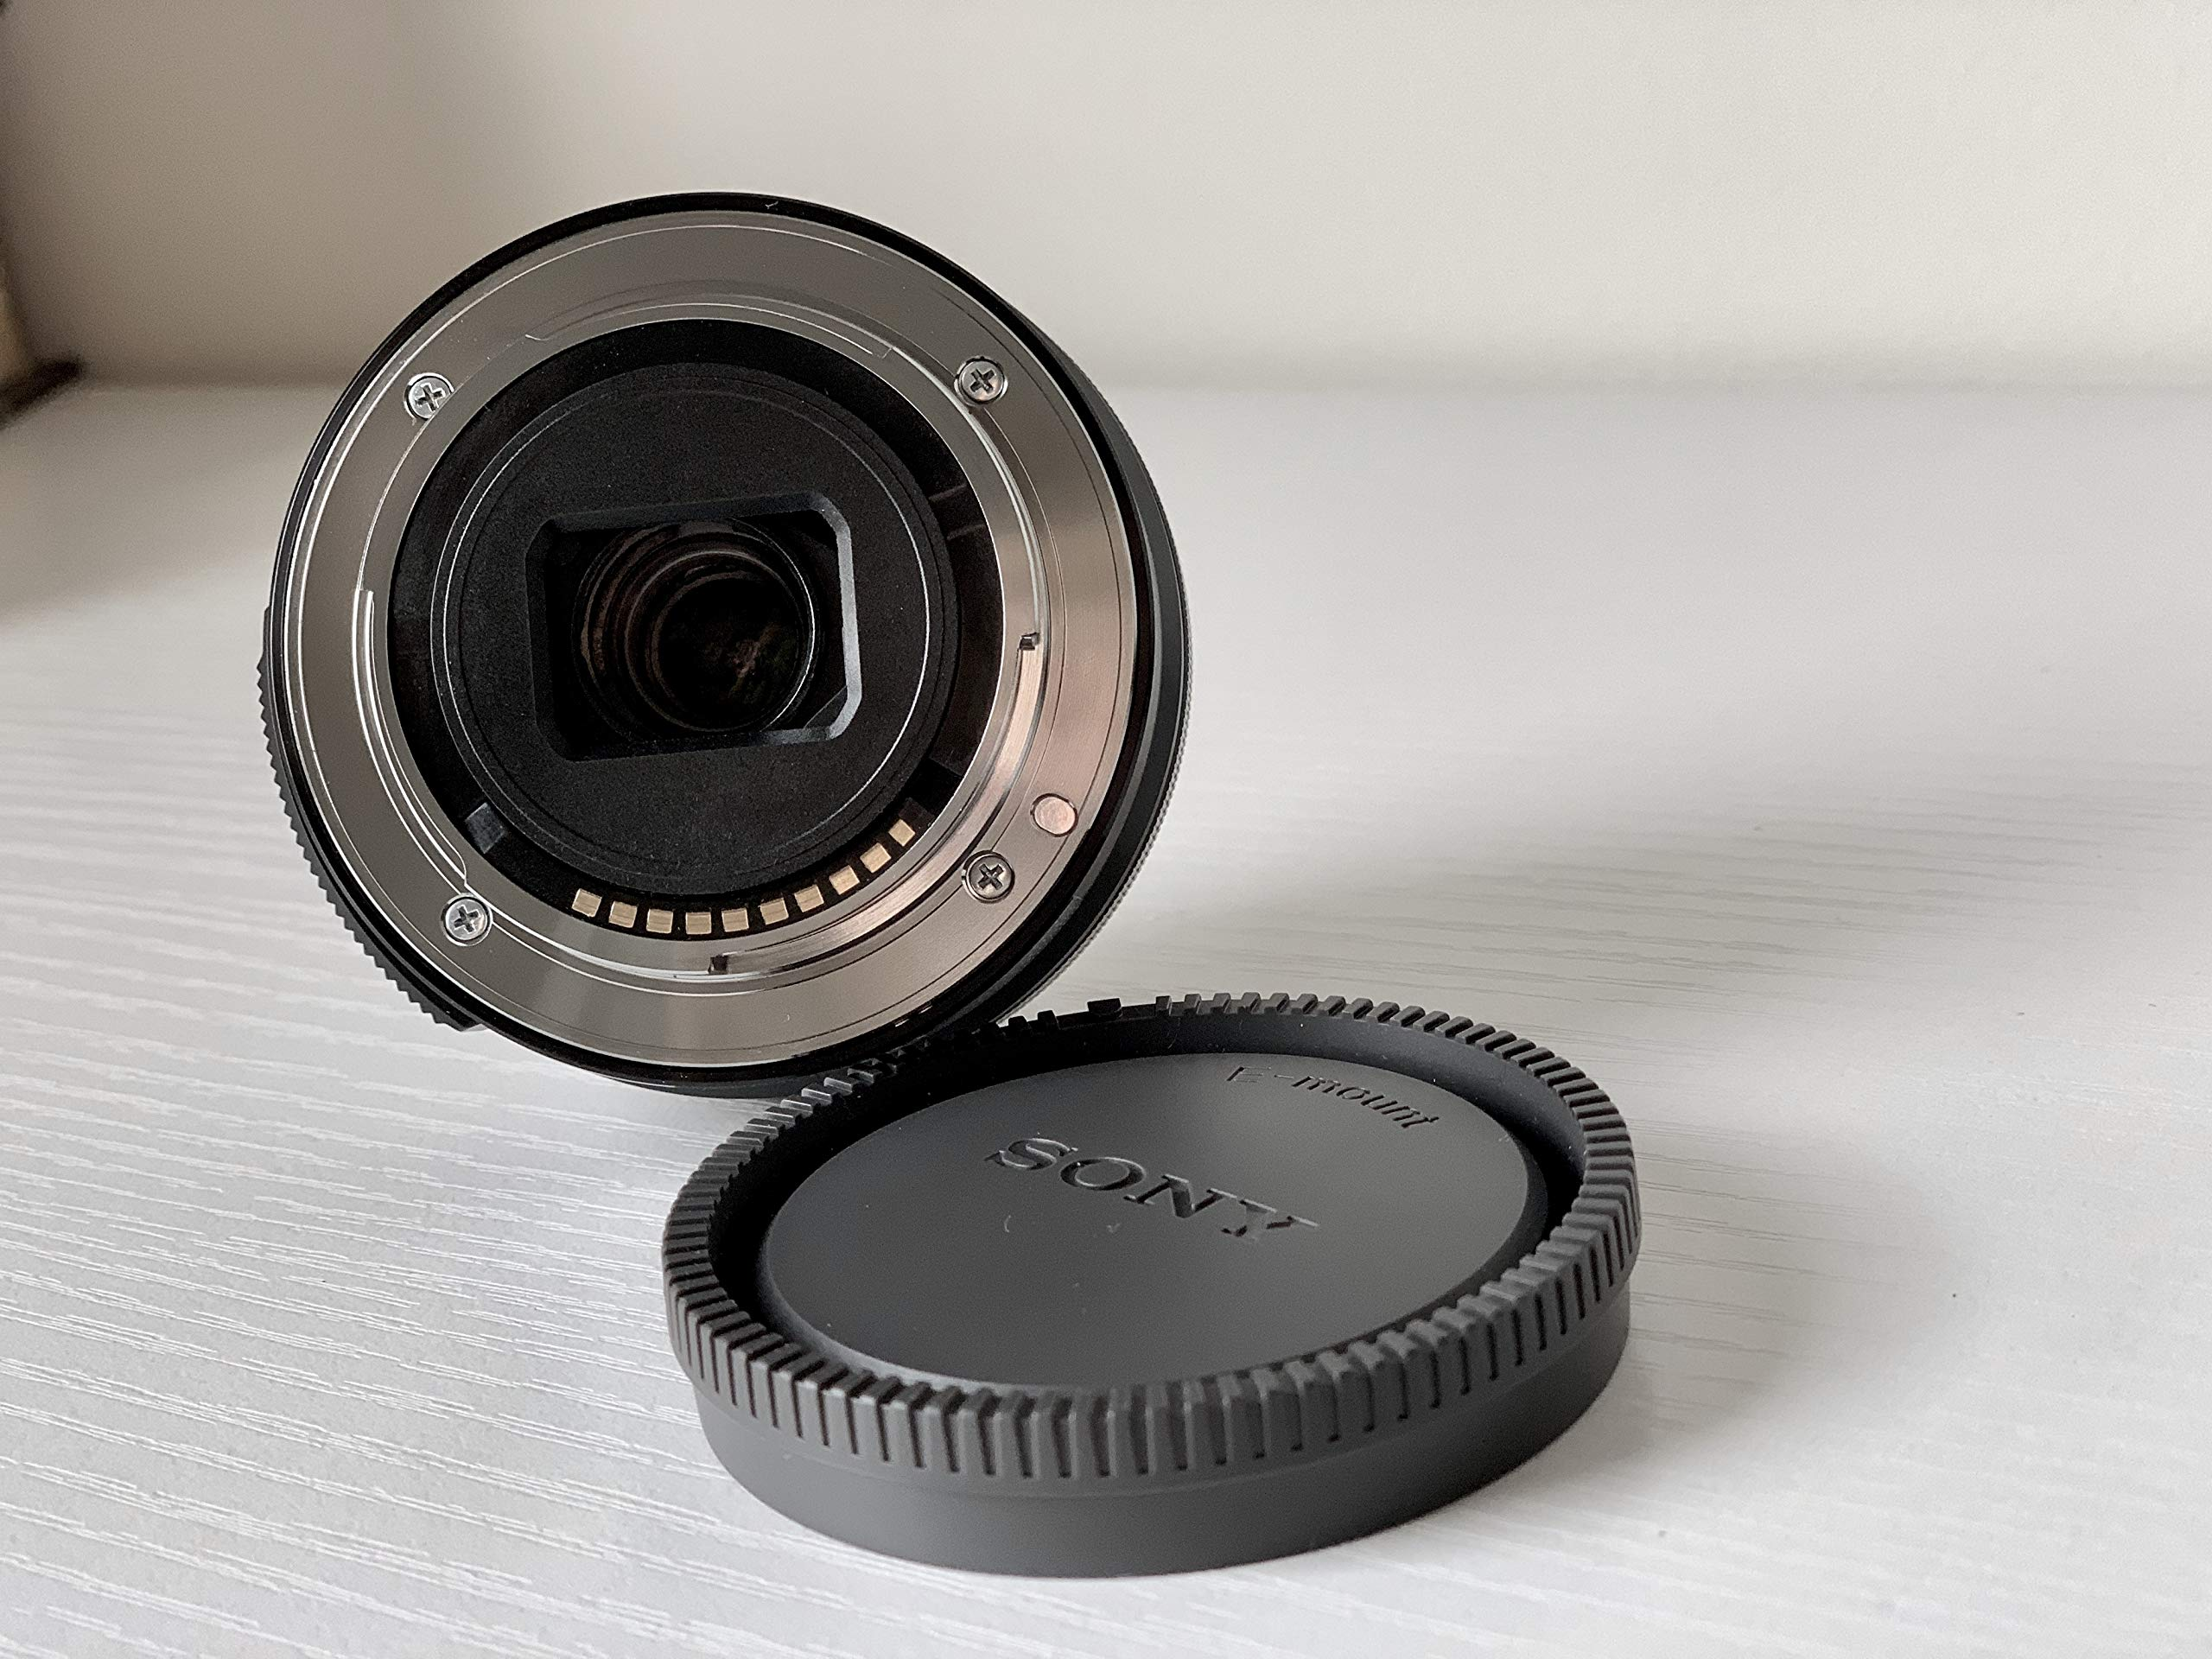 Sony 16-50mm f/3.5-5.6 OSS Alpha E-Mount Retractable Zoom Lens (Bulk Packaging) by Sony (Image #3)